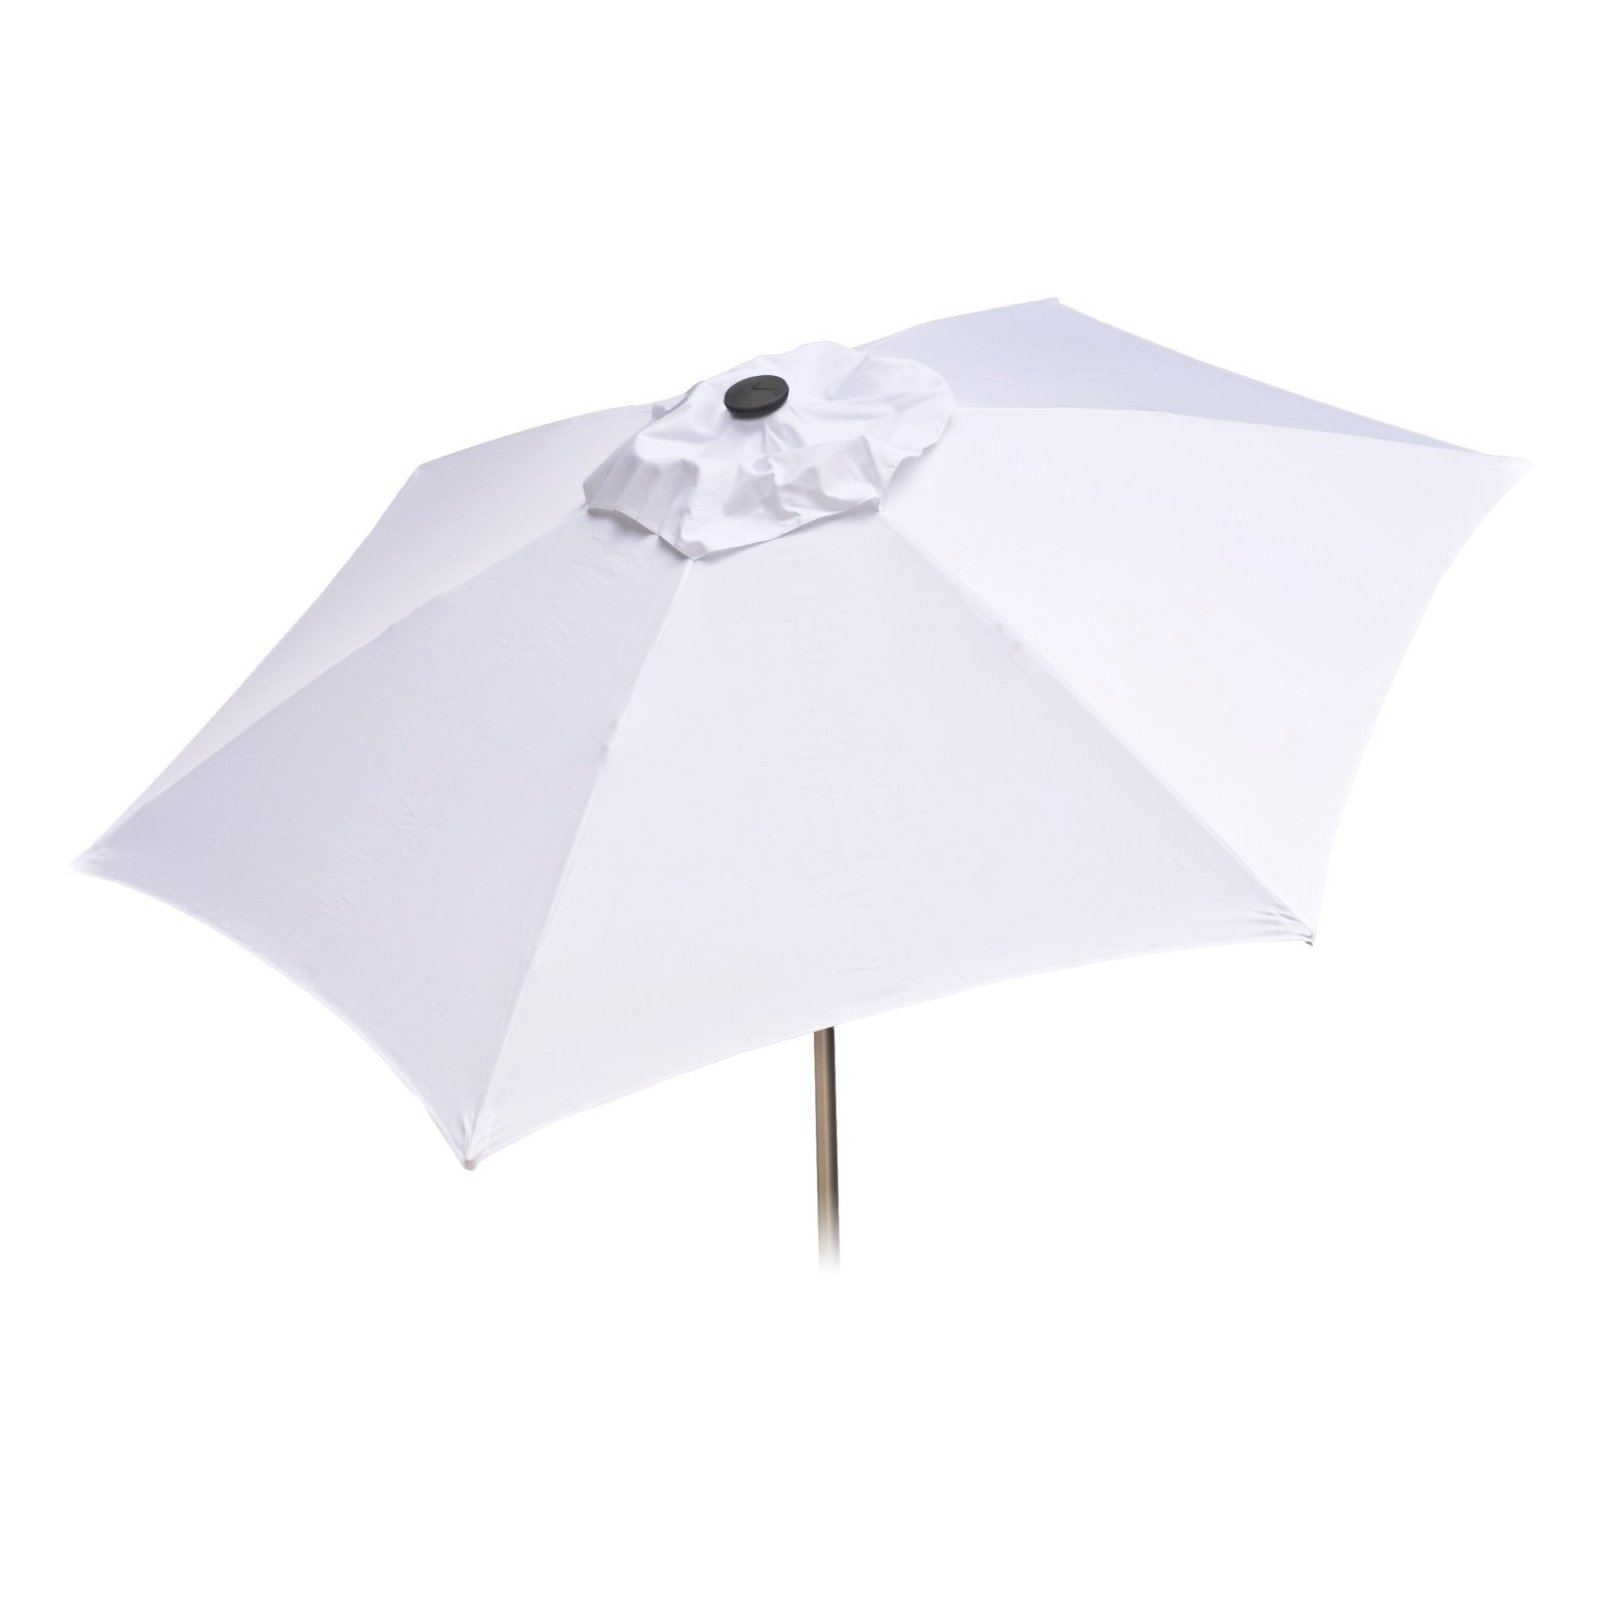 Doppler 8 foot Market Patio Umbrella - White